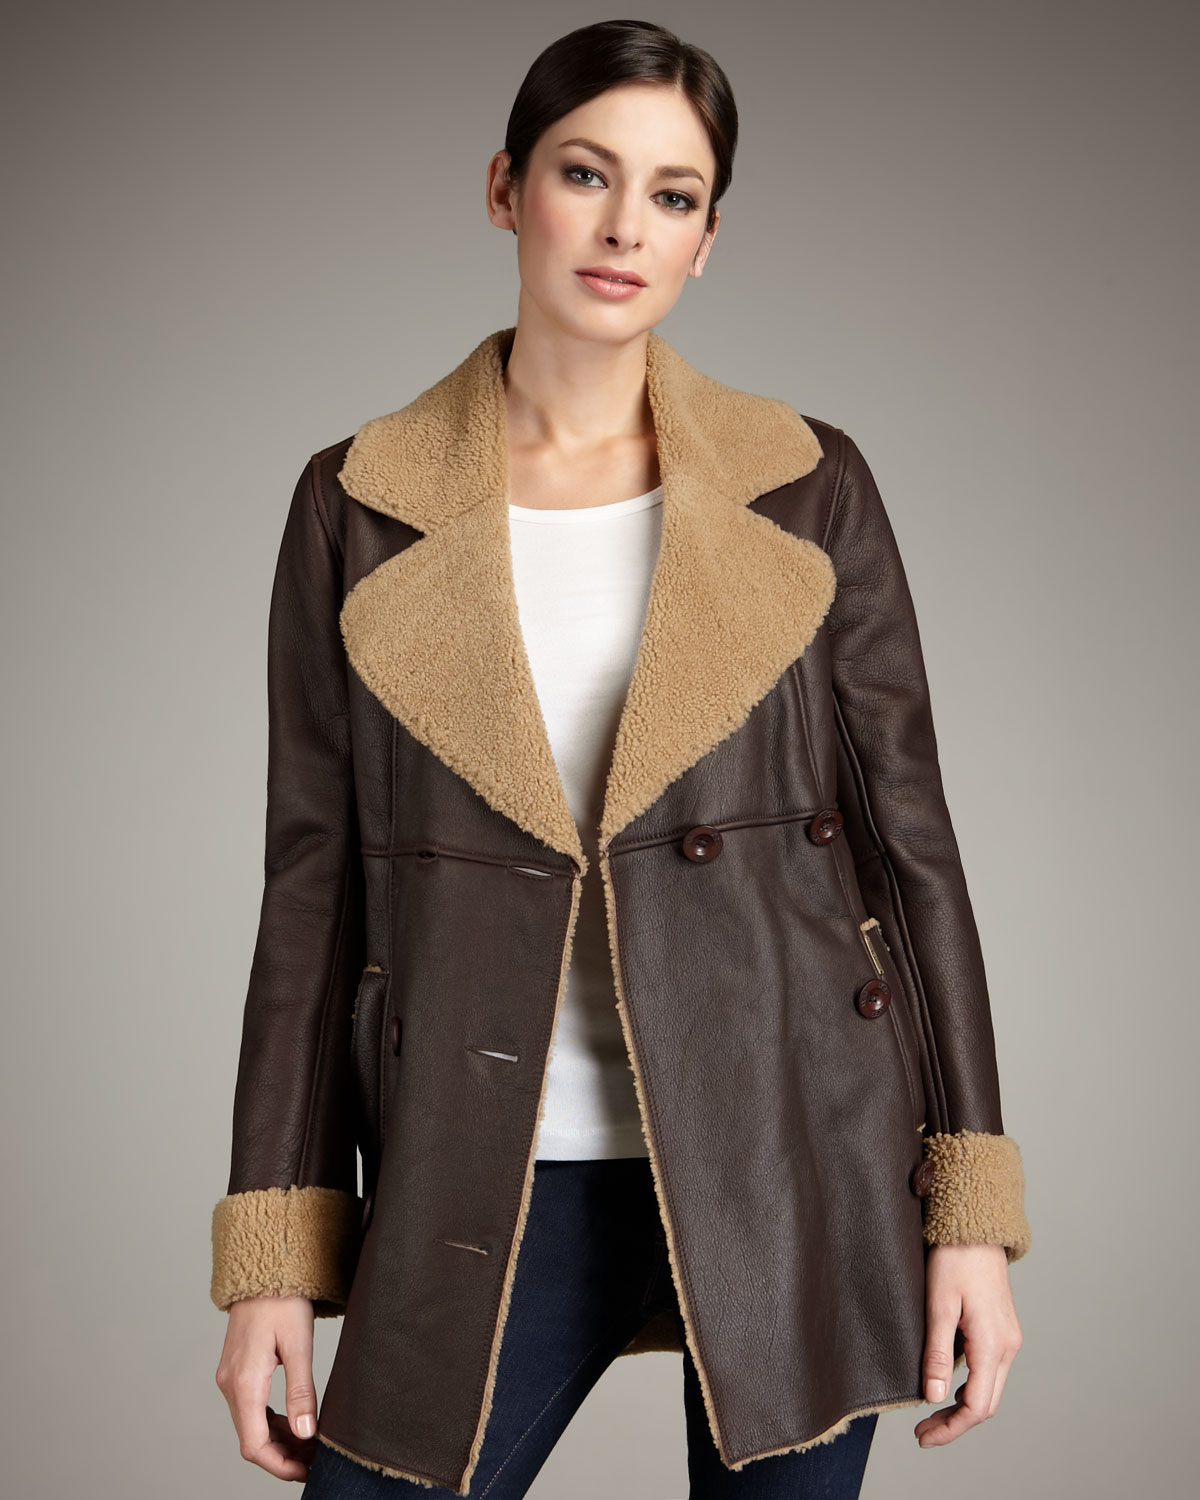 Ugg Lequoia Shearling-lined Coat in Brown | Lyst